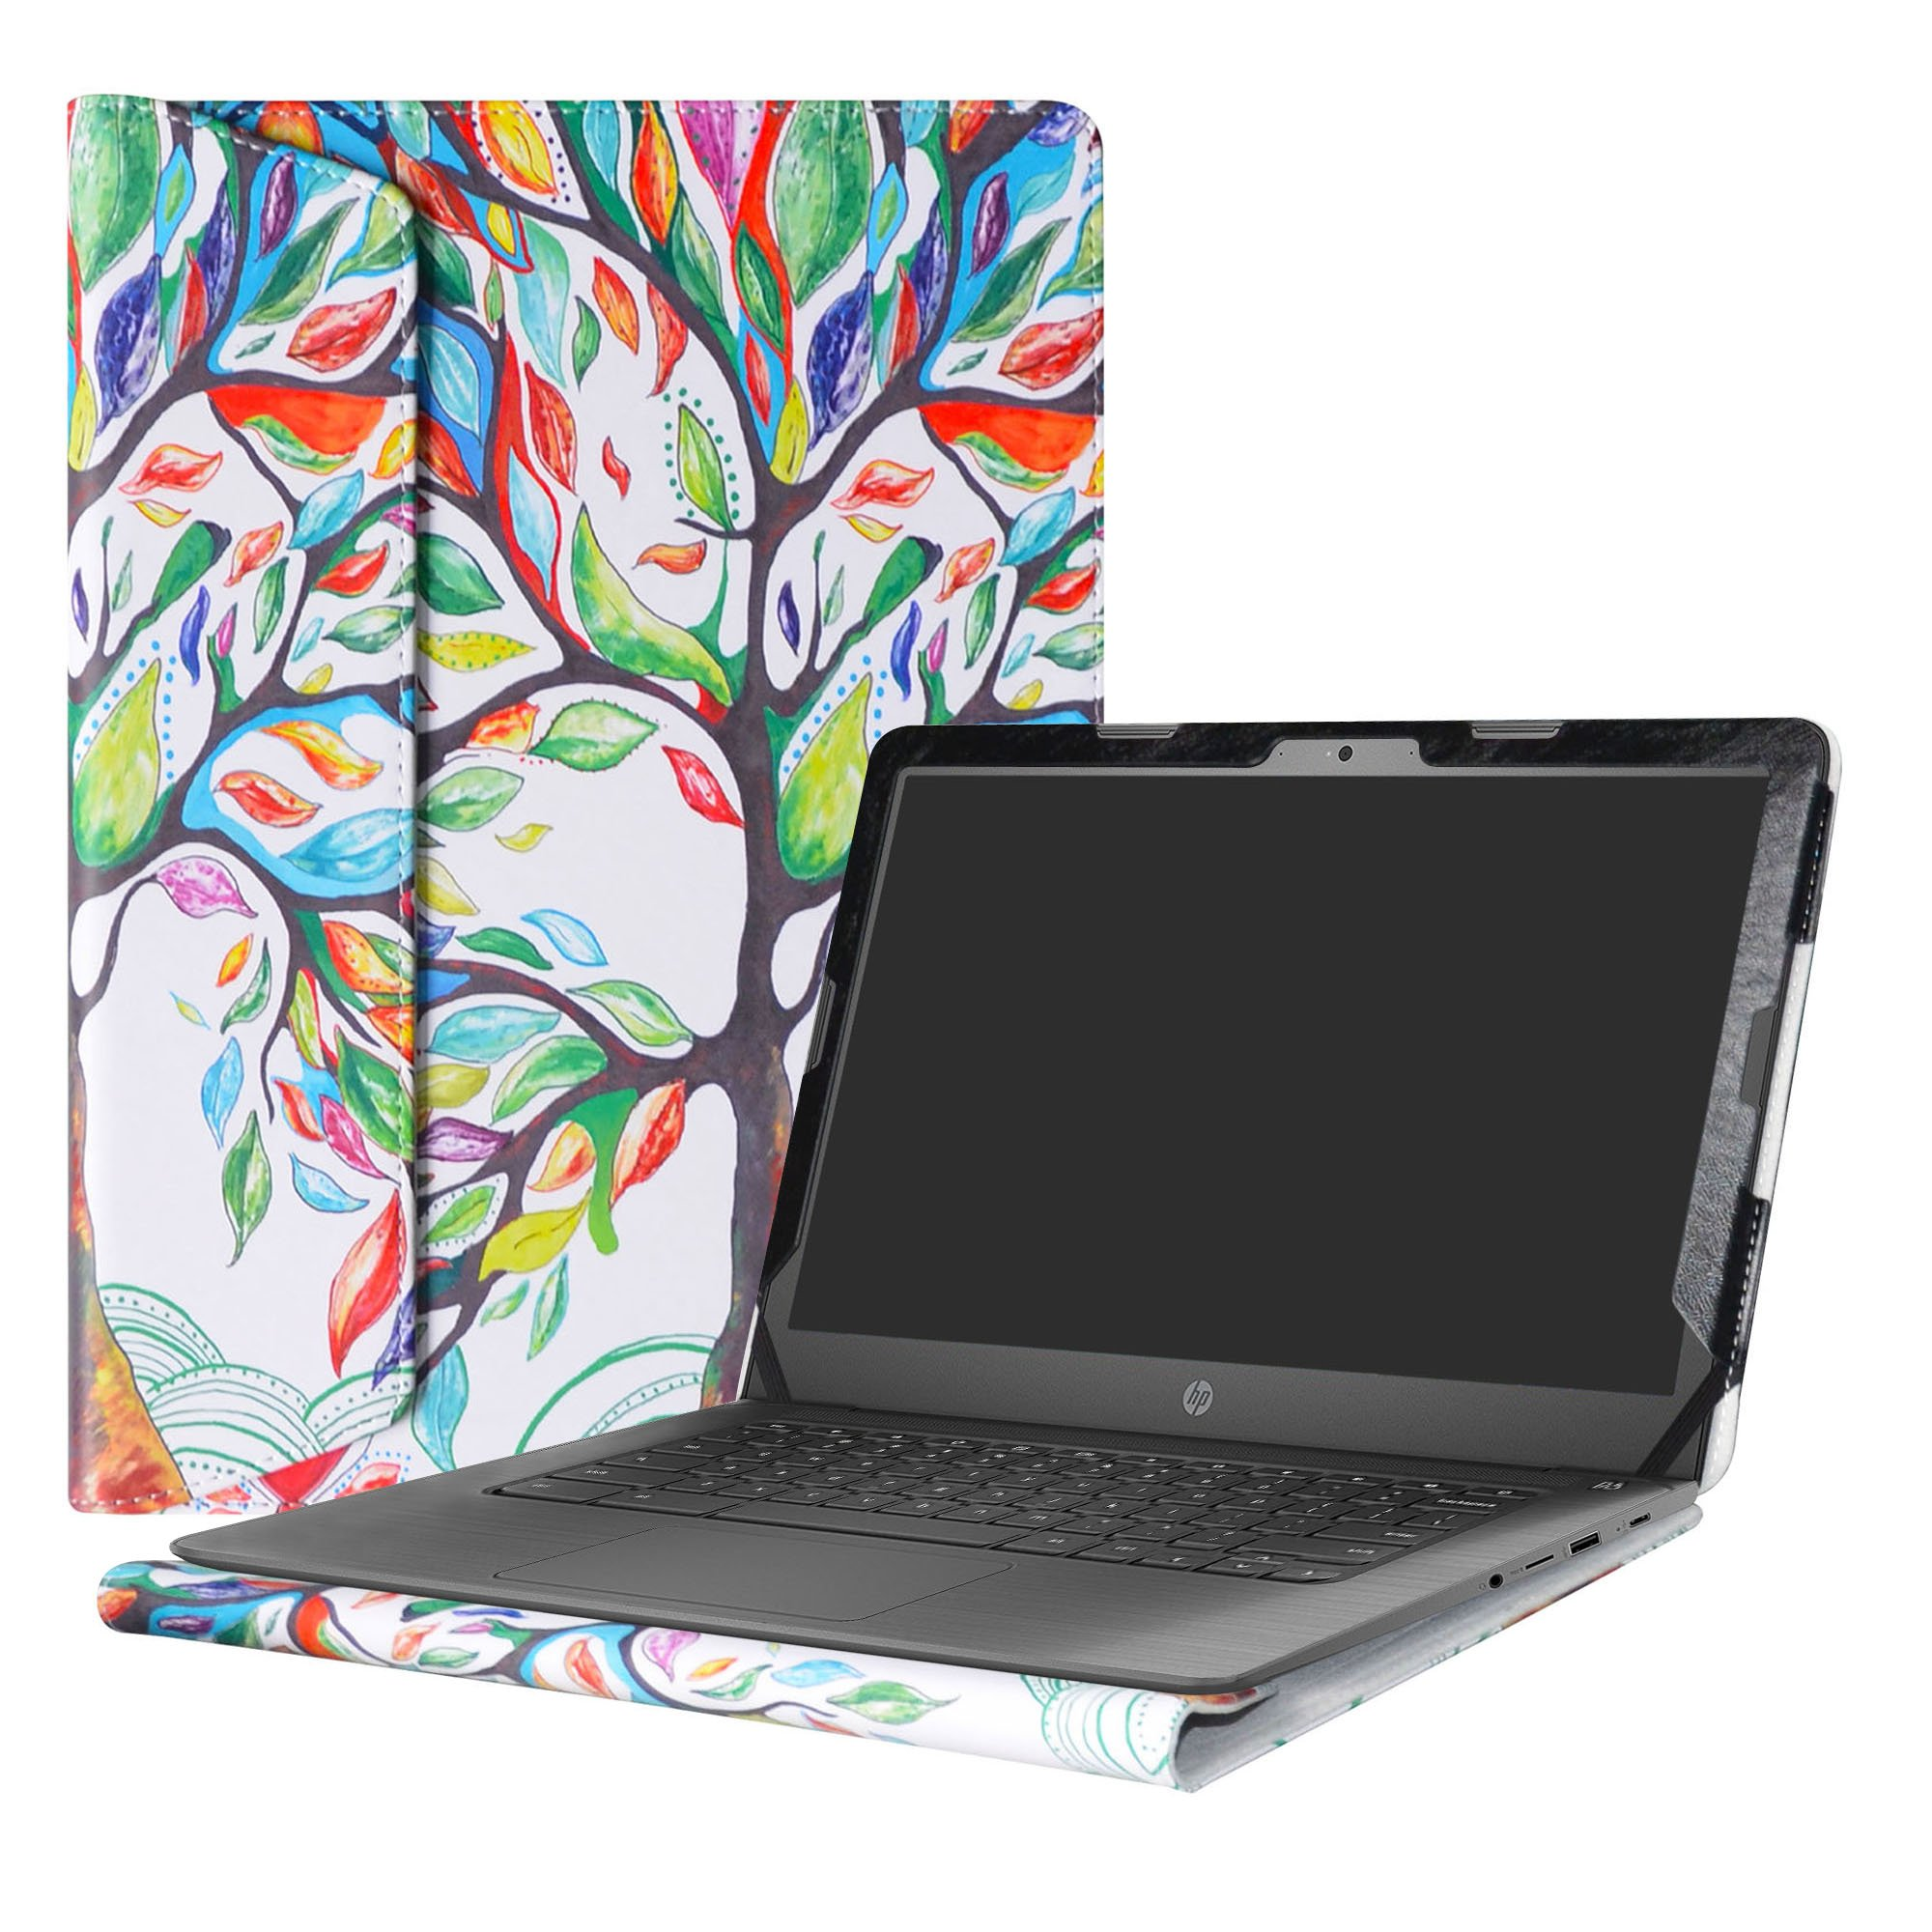 Alapmk Protective Case Cover For 14'' HP Notebook 14-bsXXX (Such as 14-bs153od)/14-bwXXX (Such as 14-bw010nr)/HP 240 G6/HP 245 G6/HP 246 G6 Laptop(Not fit 14-anXXX 14-amXXX 14-cmXXX Series),Love Tree